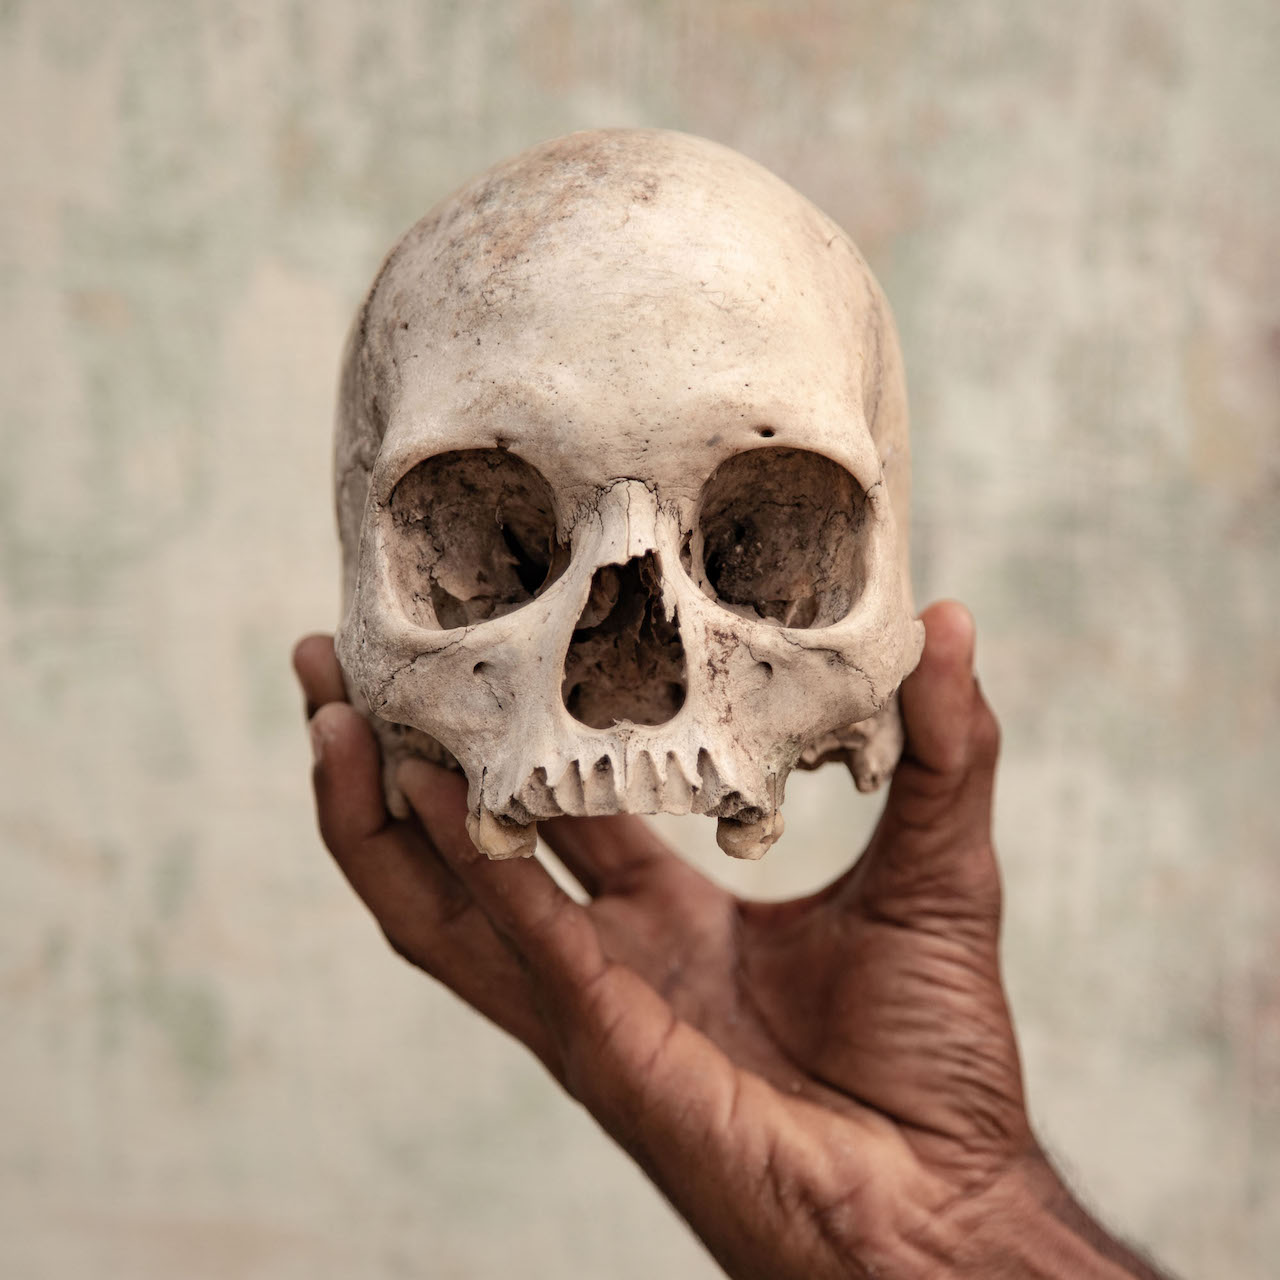 India, Tamil Nadu, May 2018. One of the skulls claimed to be the skull of a farmer who committed suicide, held by Mr Premkumar, a member of the South Indian Farmers Association. This skull was also used during a protest in Delhi in 2017, where farmers demanded a drought relief package and loan waiver for peasants from the state © Federico Borella, Italy, Shortlist, Professional, Documentary, 2019 Sony World Photography Awards